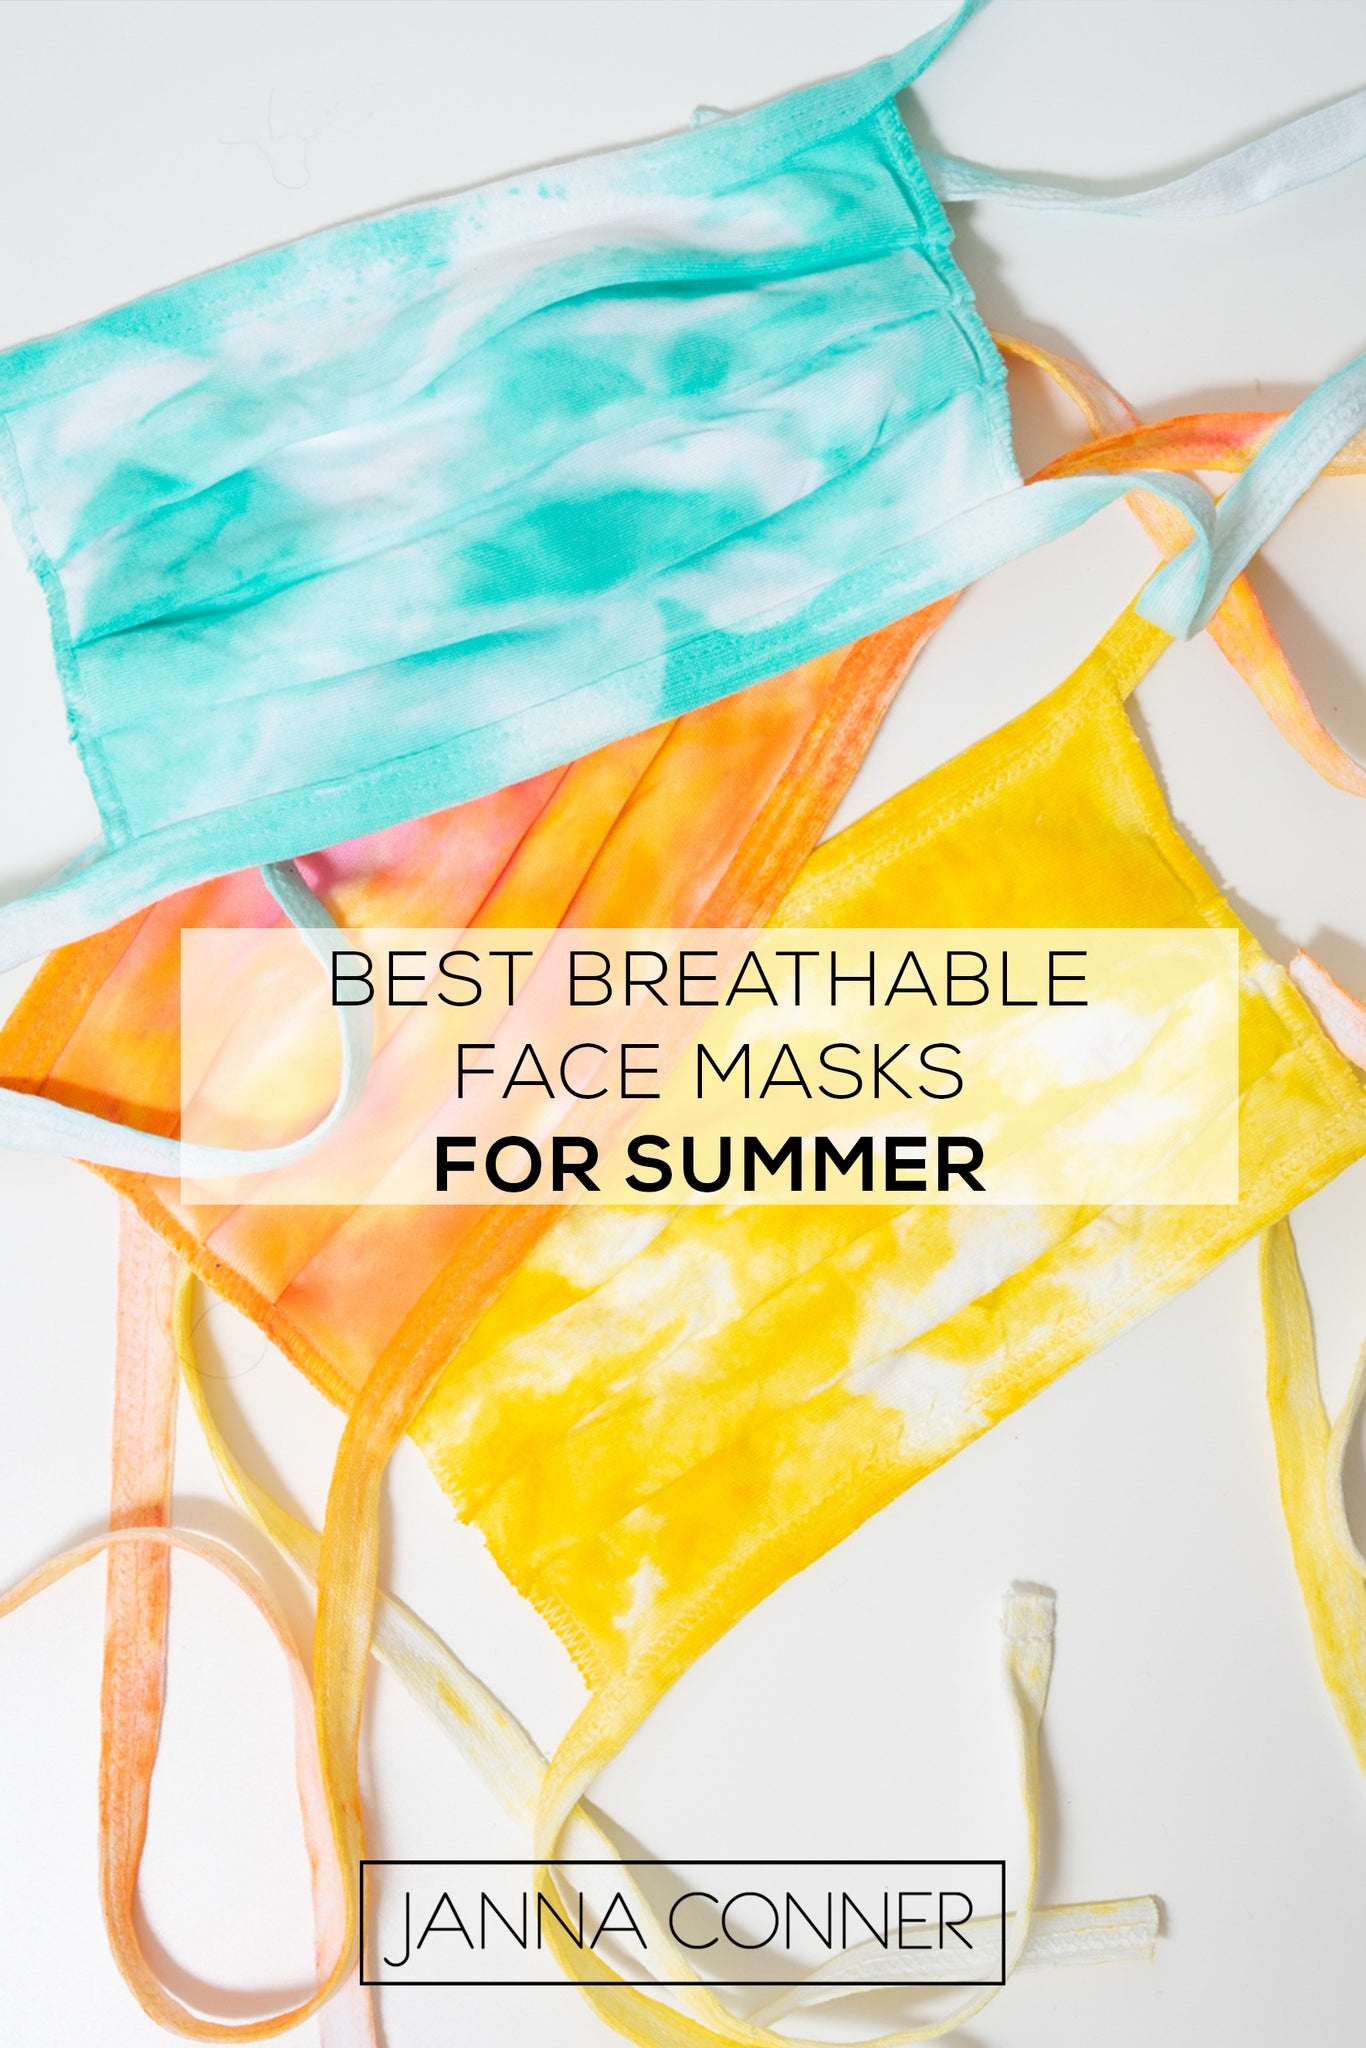 The Best Breathable Face Masks for Summer